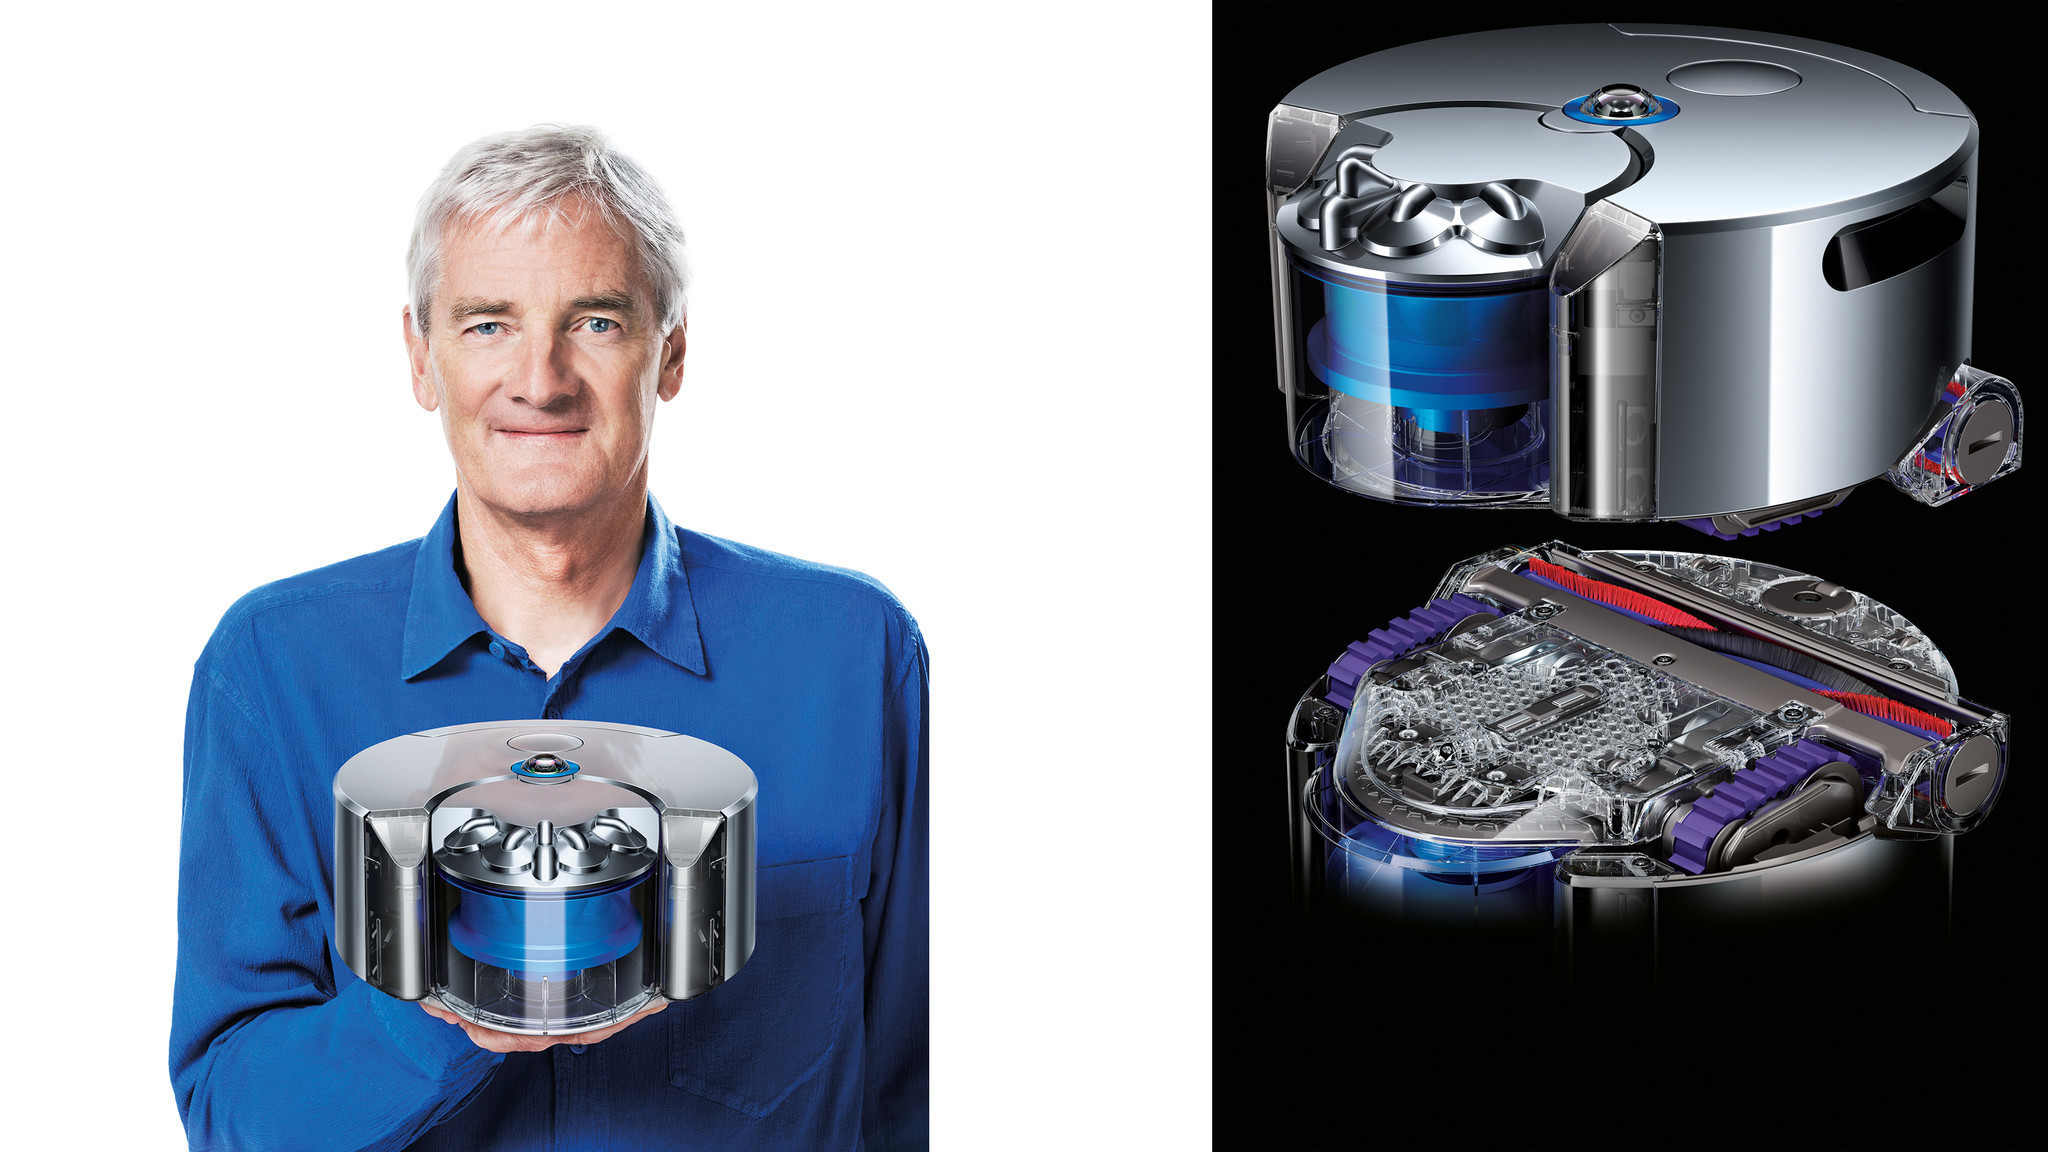 dyson unveils 39 360 eye 39 a robot vacuum cleaner chicago. Black Bedroom Furniture Sets. Home Design Ideas